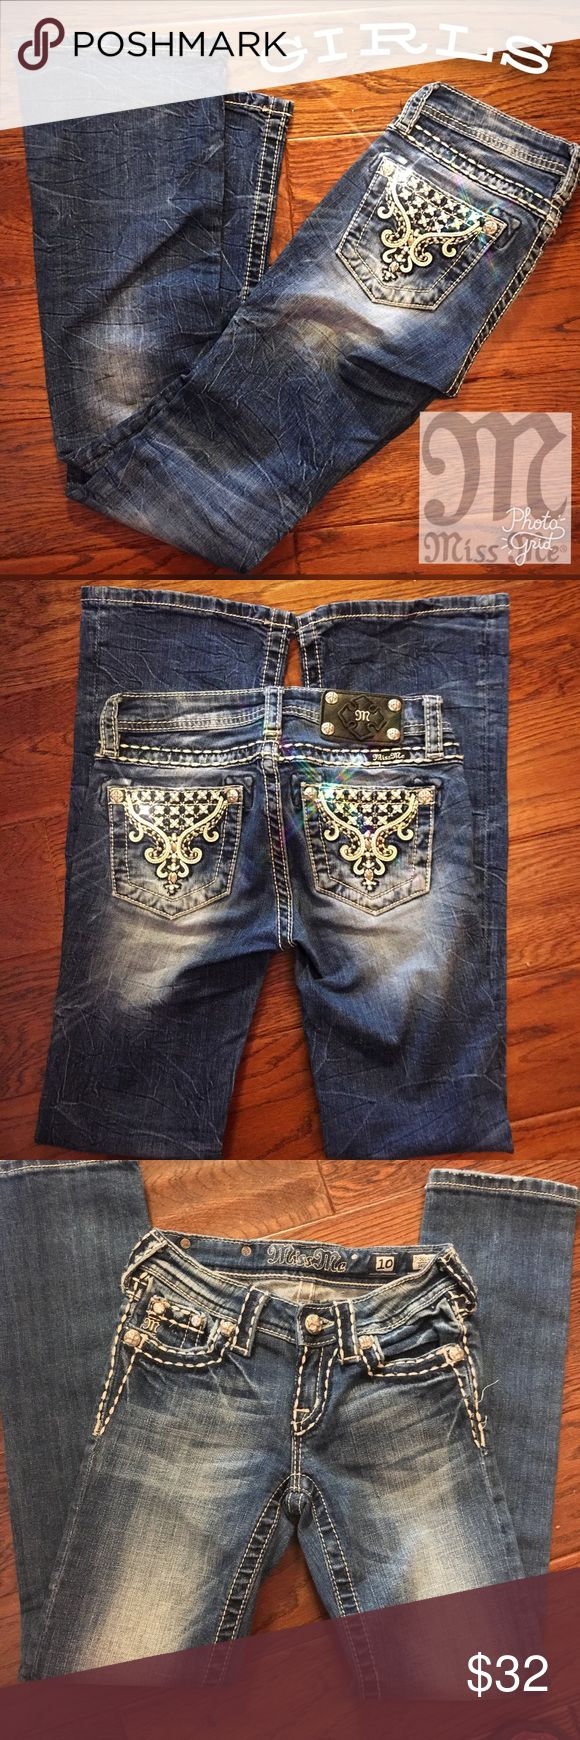 """GIRLS MISS ME JEANS W/ SUPER CUTE BLING POCKETS LIKE NEW!!! Girls Miss Me! Perfect Condition no missing crystals or studs. Adorned with ivory leather trim and a lot of bling. Of course the super stylish and great fitting like all Miss me Jeans. Inseam 28"""" Miss Me Bottoms Jeans"""